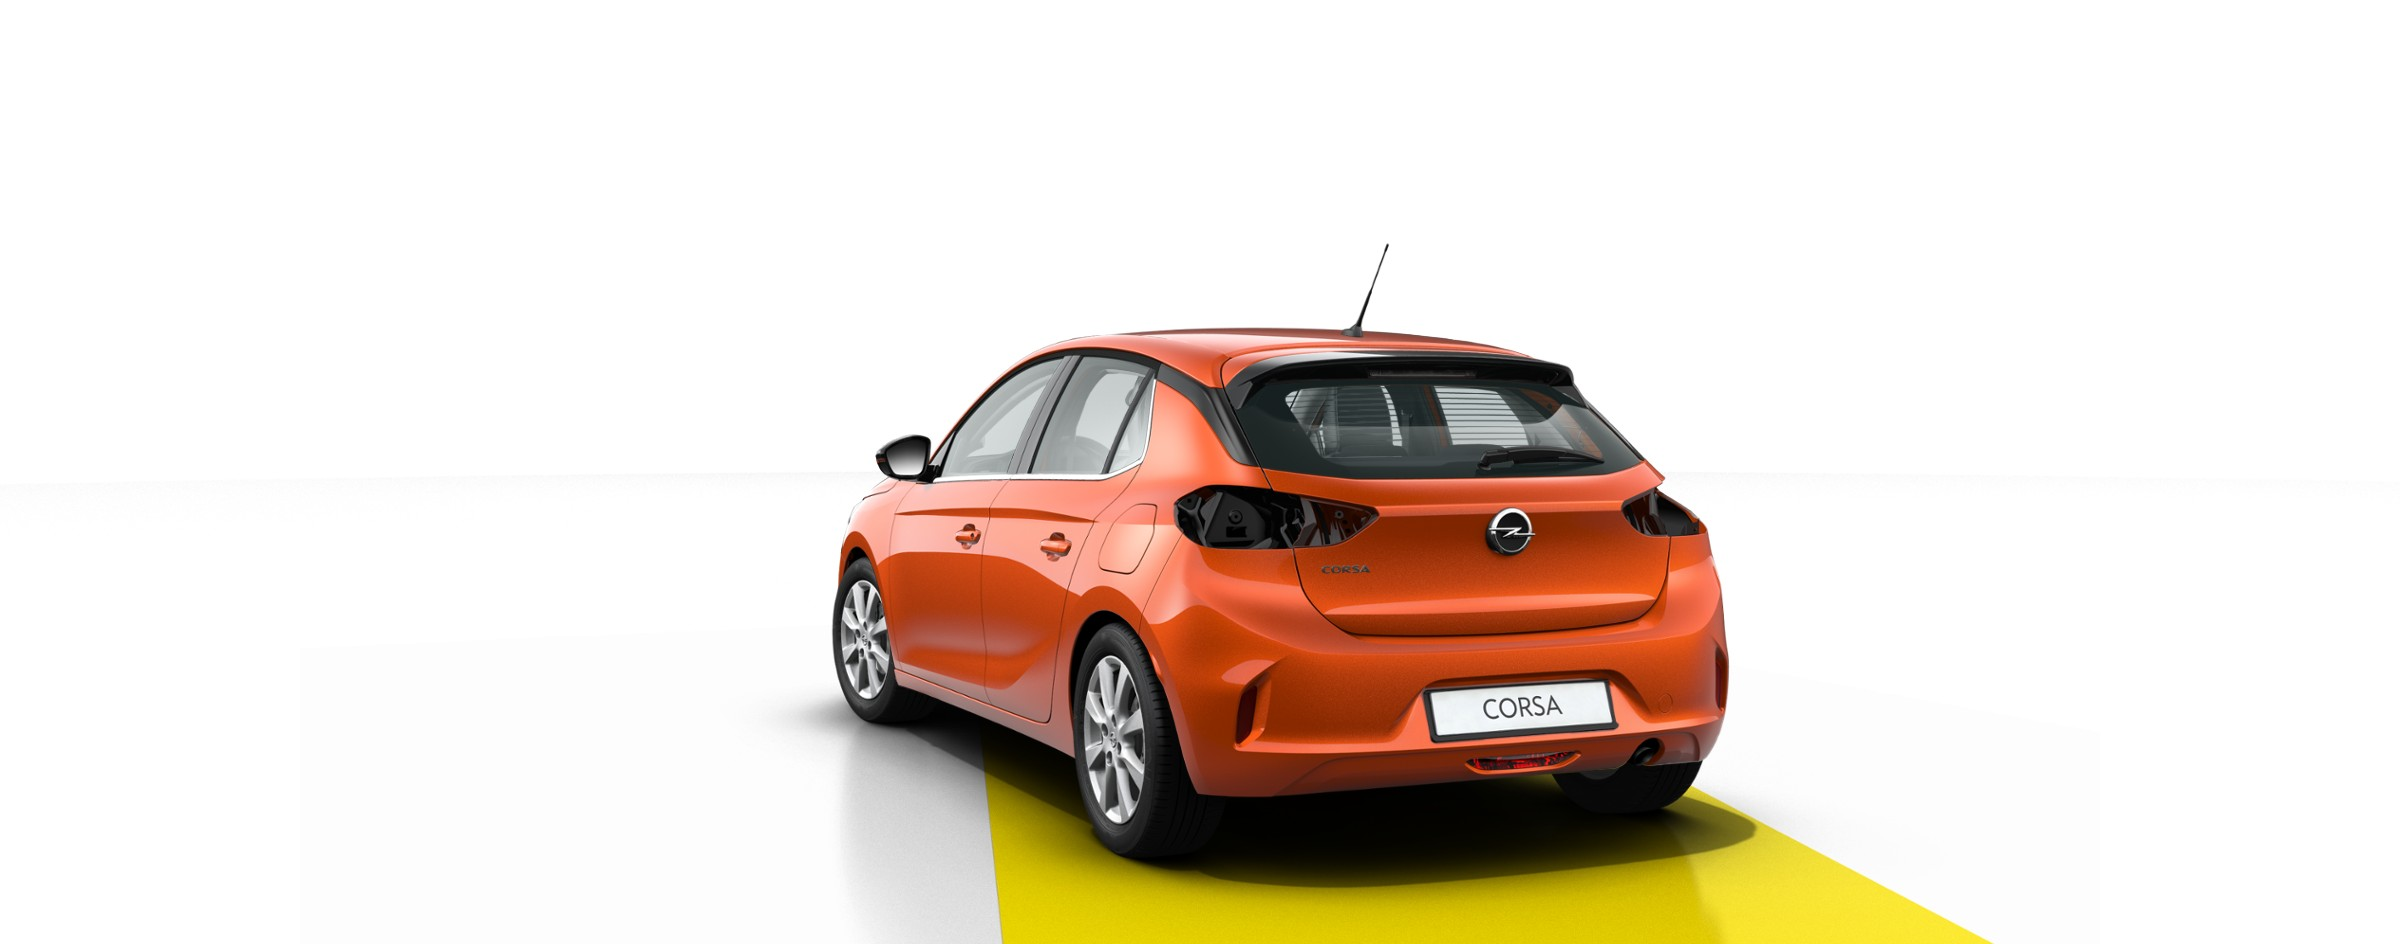 2019 - [Opel] Corsa F [P2JO] - Page 12 4AA_A51_A64_AER_AIRVENT-LHD_AKP_AKX_AQP_ATG_BADGE-OPL_BASE_BPILLAR-BXQ_BRAND-OPL-LHD_BXQ_C0I_C25_C25-FRONT_C25-REAR_C95_CE1_D75_D81_D91_DBU_DD8_DD8-FRONT_DD8-REAR_DLS-FRONT_DLS-REAR_DP6_DP6-FRONT_DP6-REAR_DXH_E90_E91_EXHAUST_FE2_FOGLAMP-T3U_FOGLAMP-T79_FWD_GLASS-FRONT-LHD_GLASS-REARv01_GPQ-D75-LHD_GPQ-FRONTBUMPER_GPQ-FULLROOF_GPQ-PAINT_GPQ-REARBUMPER_GRILLE-W7V_GROUNDSHADOW_HEATINGWIRE-FRONT_HEATINGWIRE-REAR_HY6_IMI_IMI-LHD_IOB_IOB-LHD_J73_JAB_K34_K34-LHD_LHD_M0F-LHD_MEO_N35_N35-LHD_N37_N37-LHD_NAMEPLATE-OPL_OLD_OLK_OLK-ON_PRIMER-TRUNK-FRONT_PRIMER-TRUNK-REAR_REARBADGE_RNT_RRZ_RRZ-OPL_S900_SPOILER-D81-GLOSS_T3S_T3U_T4L_T79_TAVG-A51-SEATLEFT-LHD_TAVG-A51-SEATRIGHT-LHD_TAVG-AQP-LHD_TAVG-LHD_TIRE16_TQ5_TS6_U2Q_U91_UC3_UC3-LHD_UHH_UHS_UJO_VEE_W5T_WIPER-LHD_WLZngstdzoom.jpg&std=true&country=FR&brand=opel&channel=b2c&phase=phase3bng&quality=0